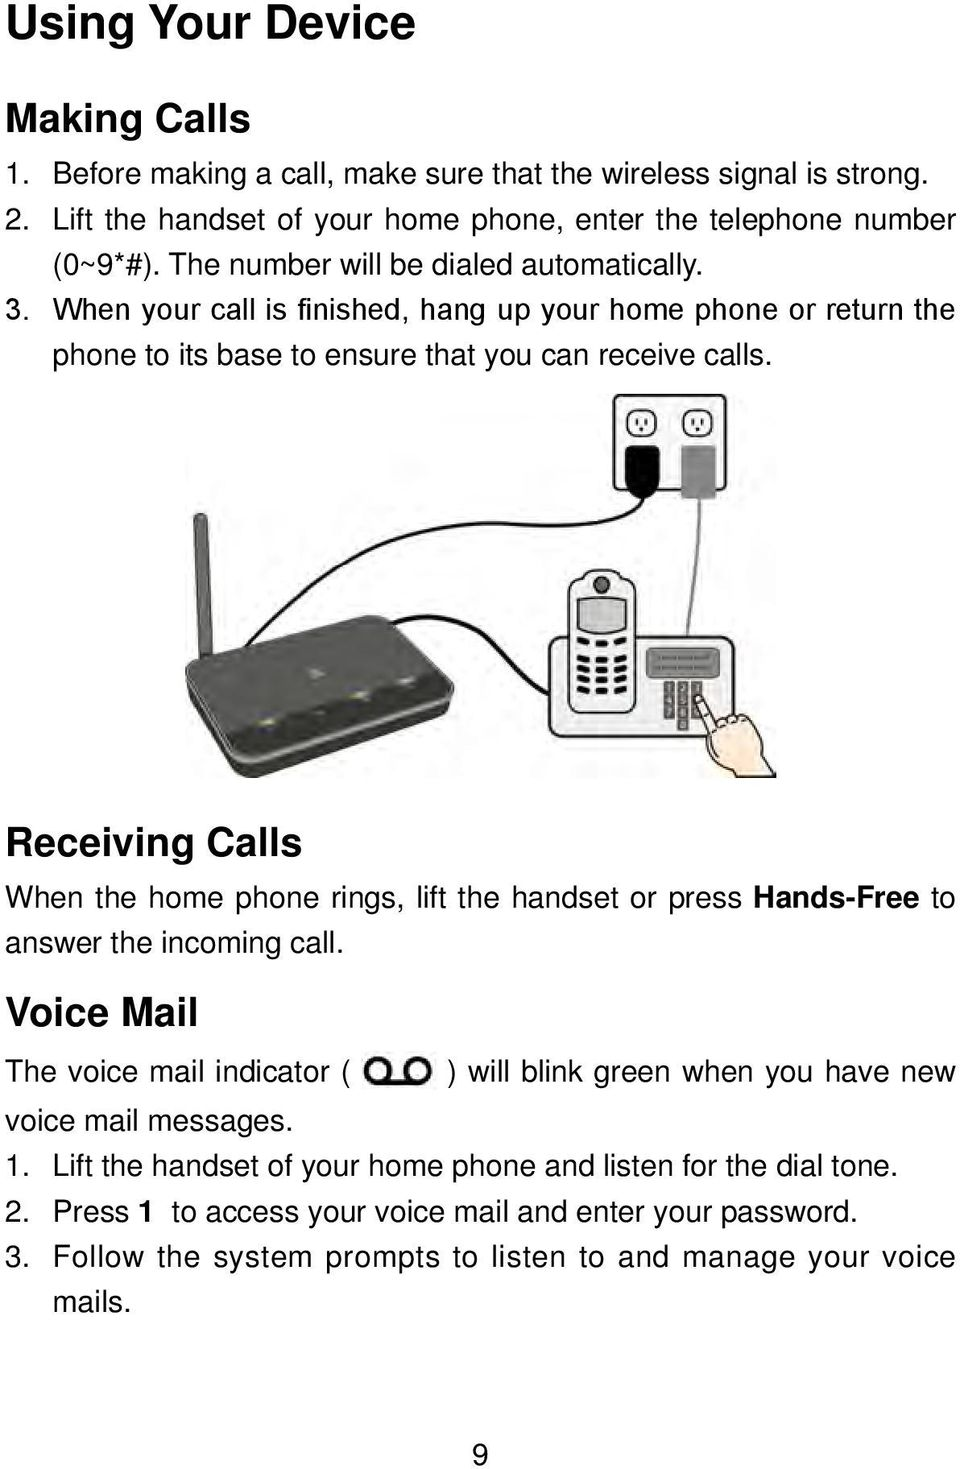 Receiving Calls When the home phone rings, lift the handset or press Hands-Free to answer the incoming call.